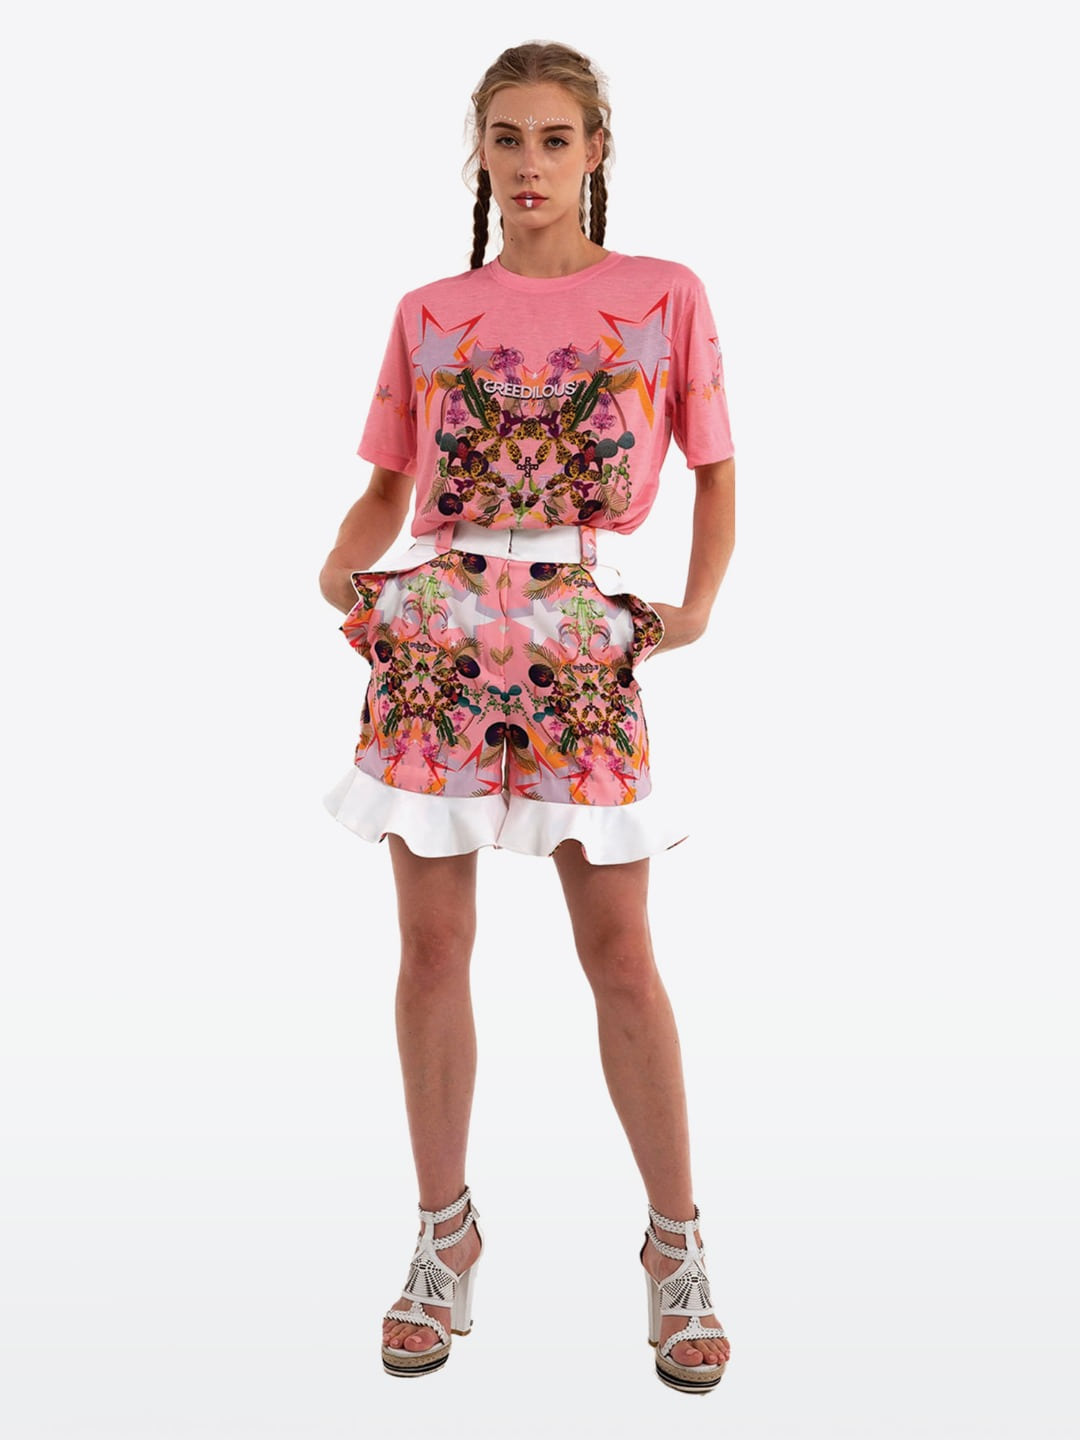 PEACH CHANDELIER T-SHIRT